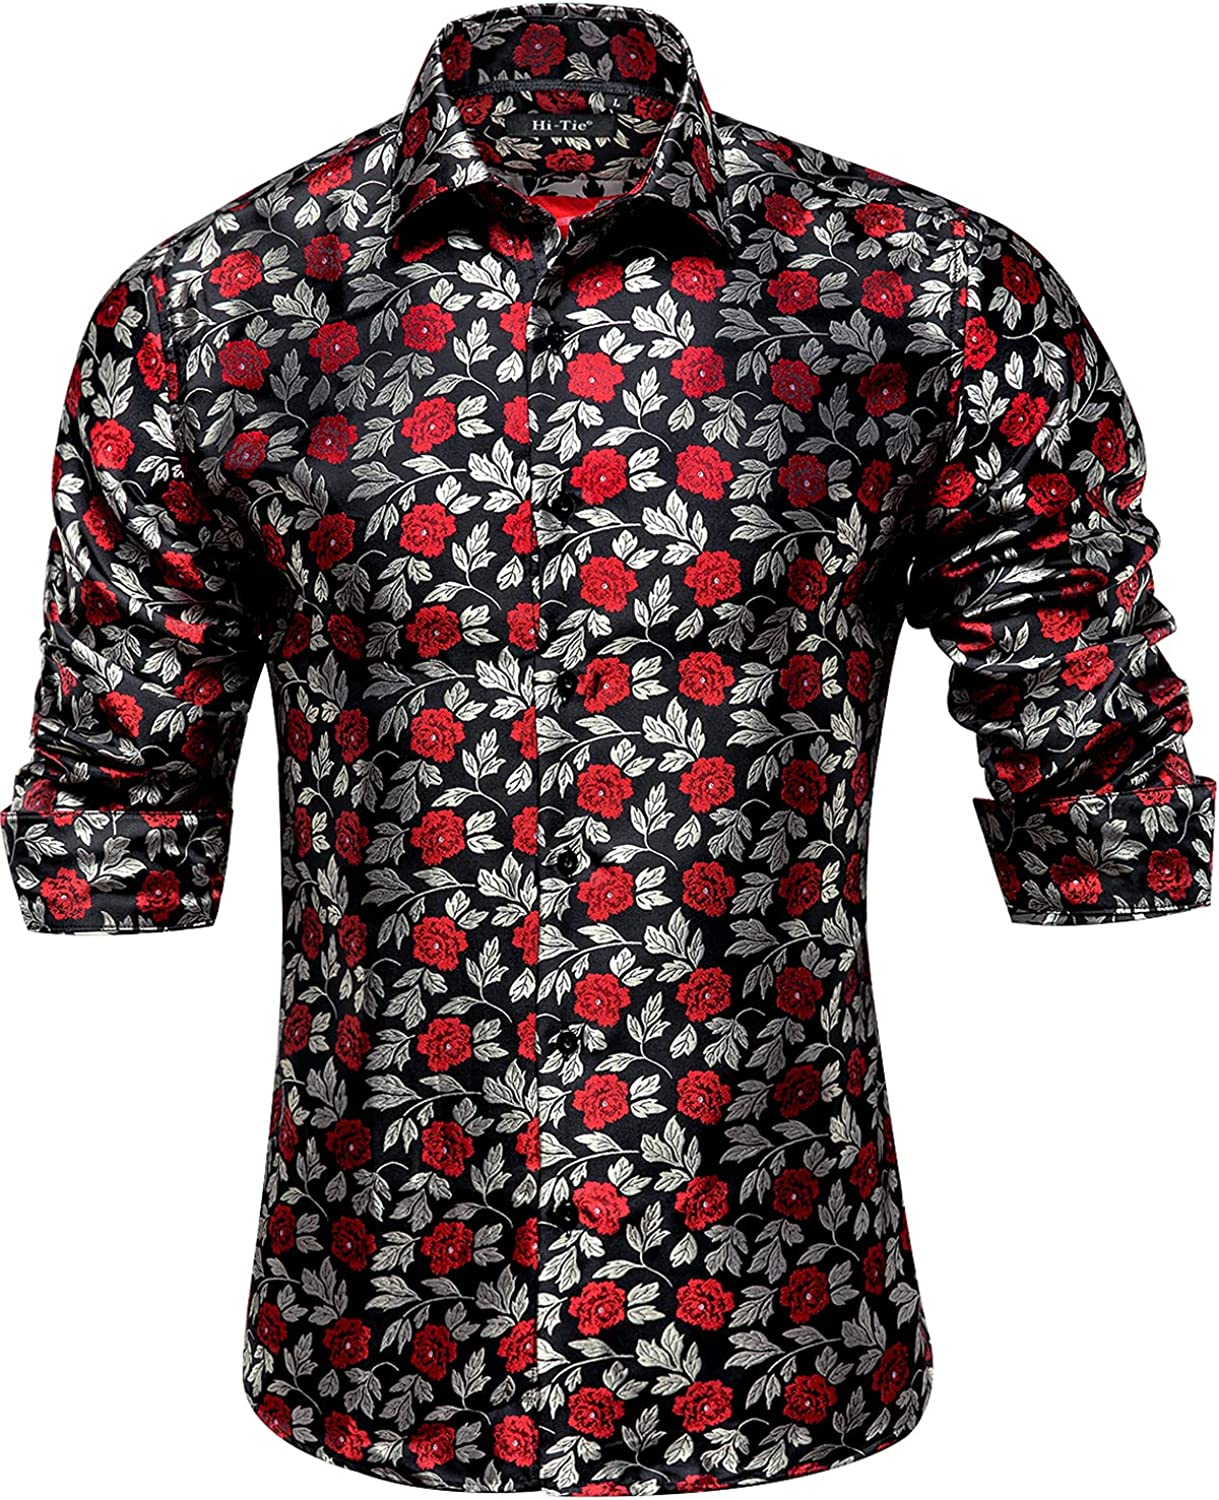 Hi-Tie Sales of SALE items from new works Men's Casual Jacquard Silk Shirt Ranking TOP1 Dress Button Shirts Down